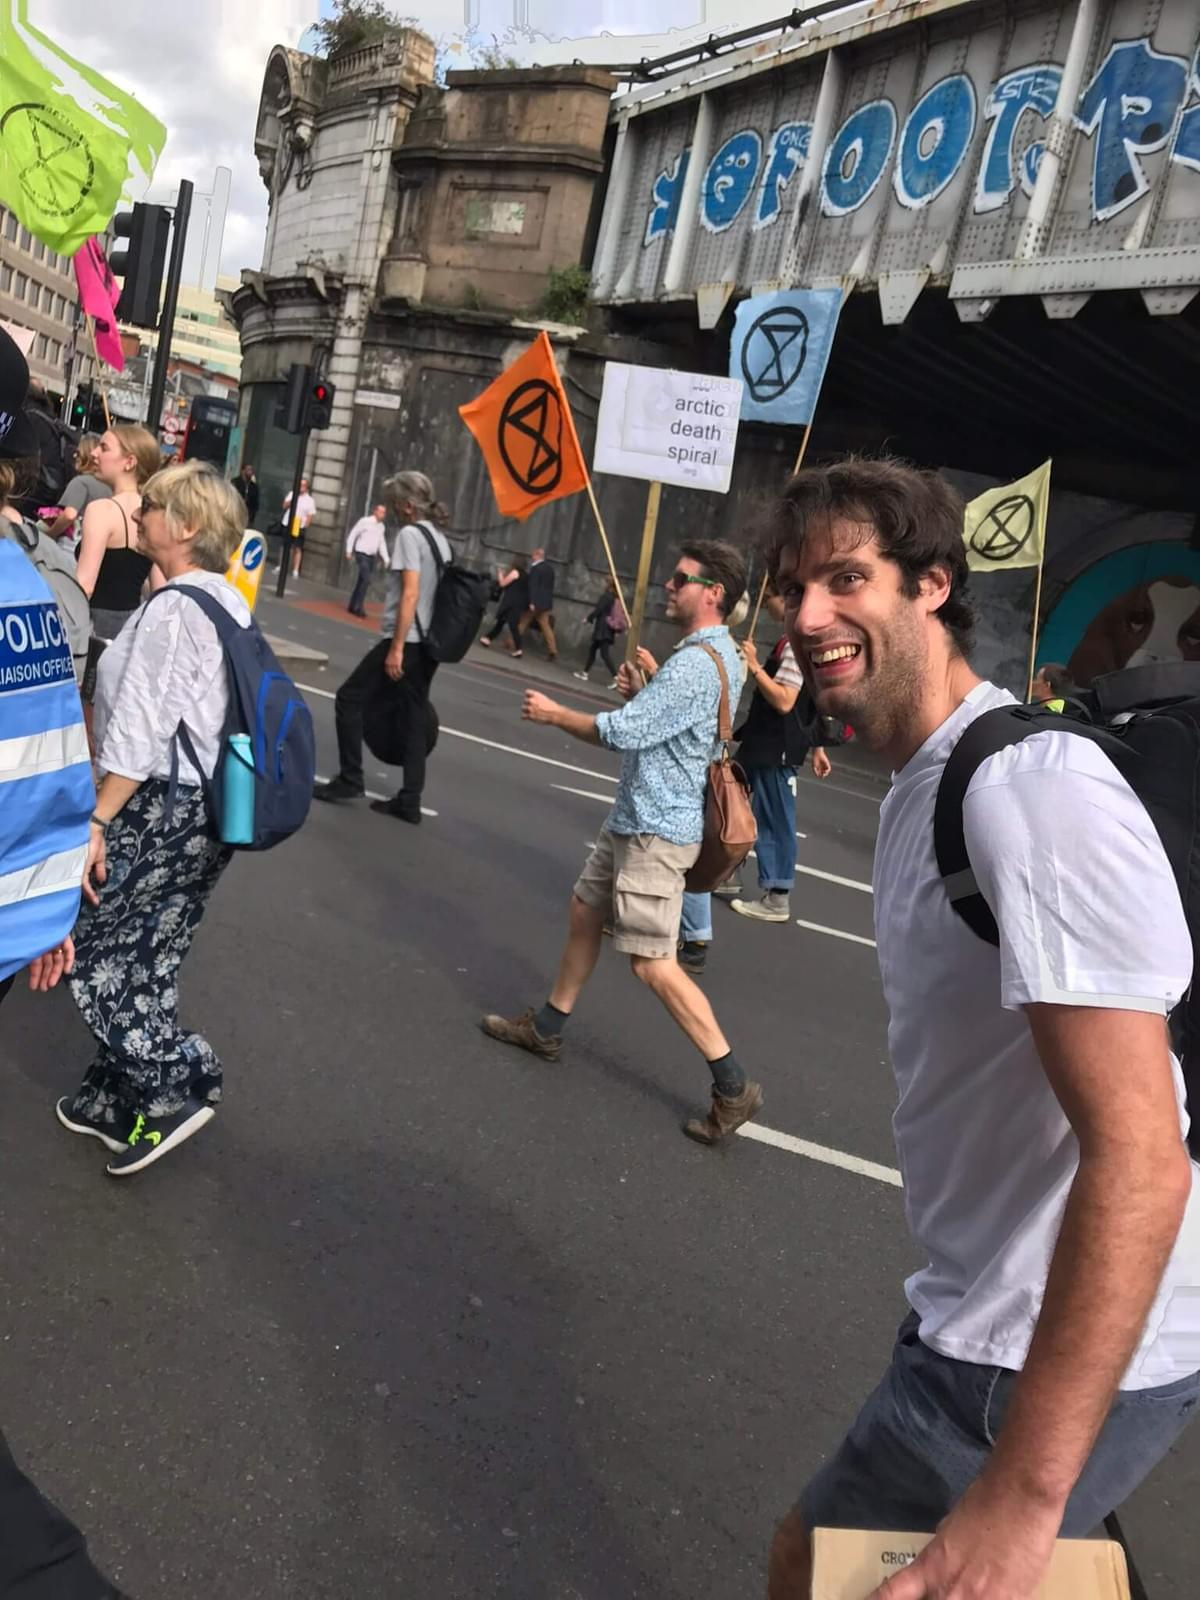 Sam walking down the street amongst Extinction Rebellion protesters